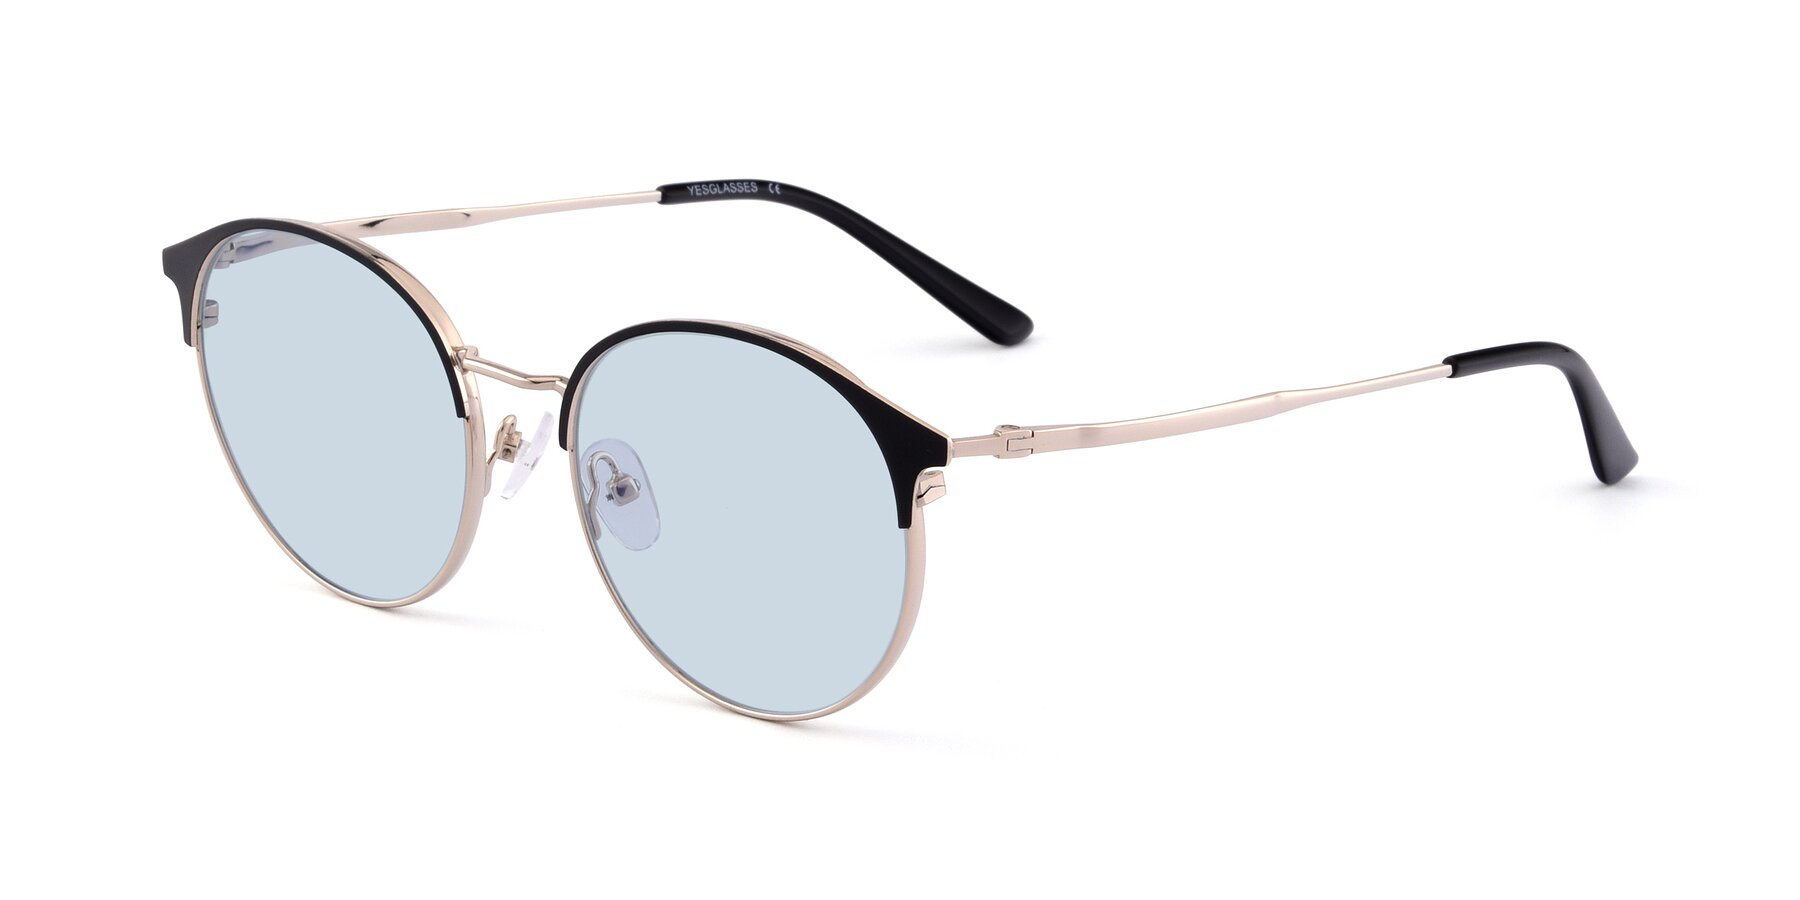 Angle of Berkley in Black-Gold with Light Blue Tinted Lenses